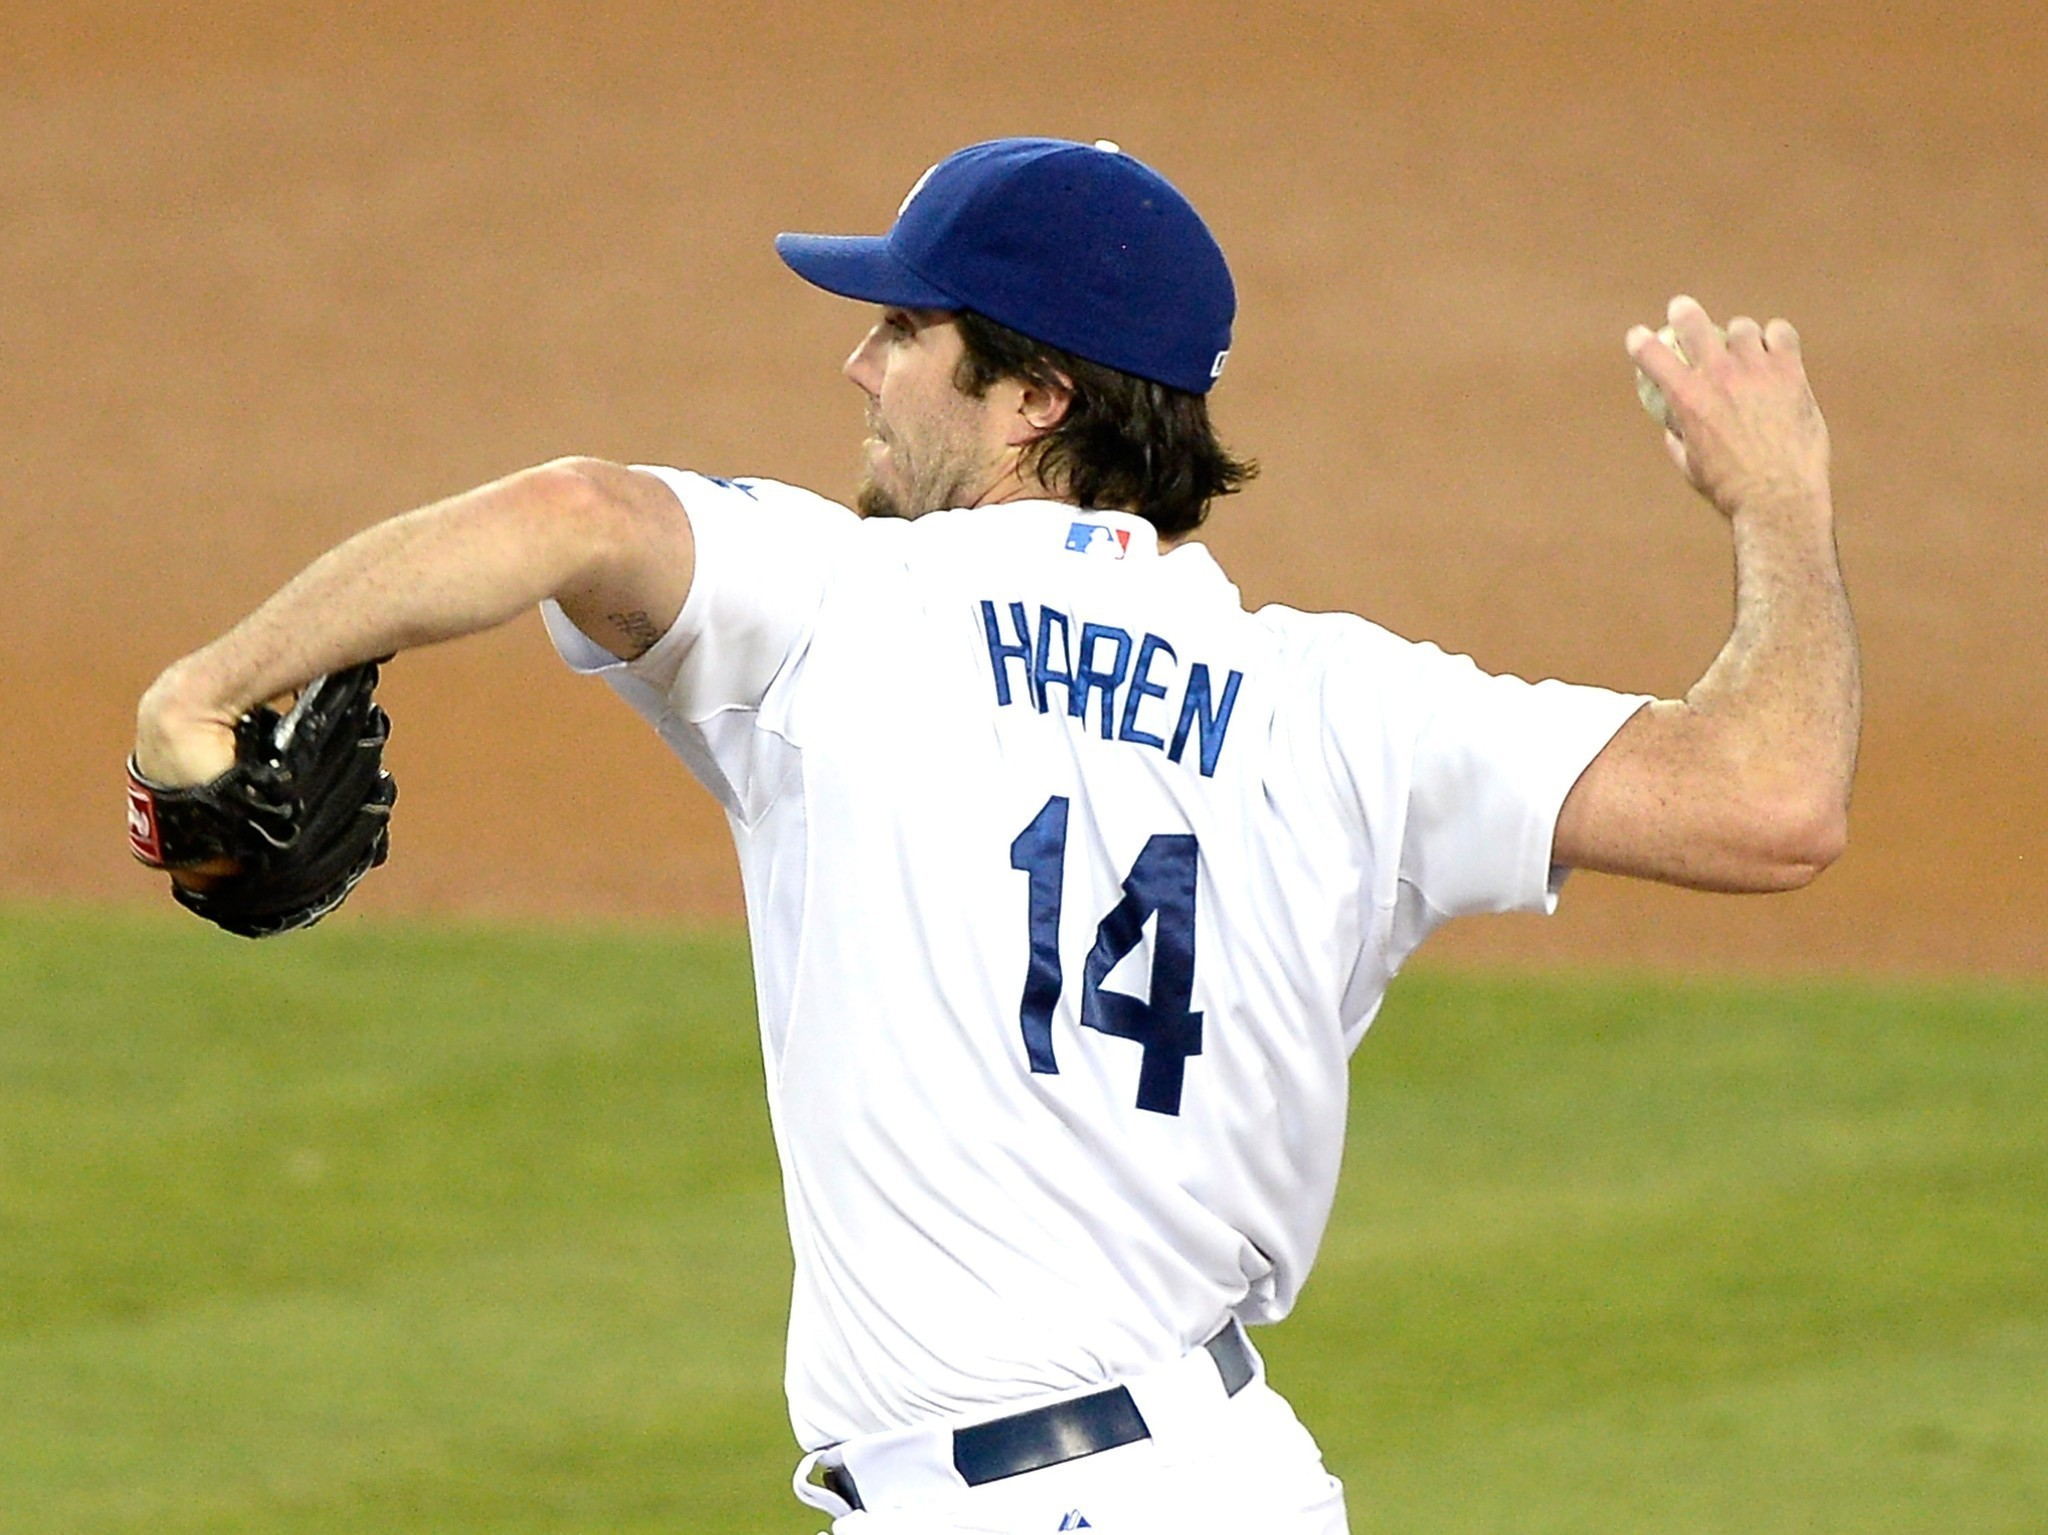 Dan Haren might have a future with the Dodgers